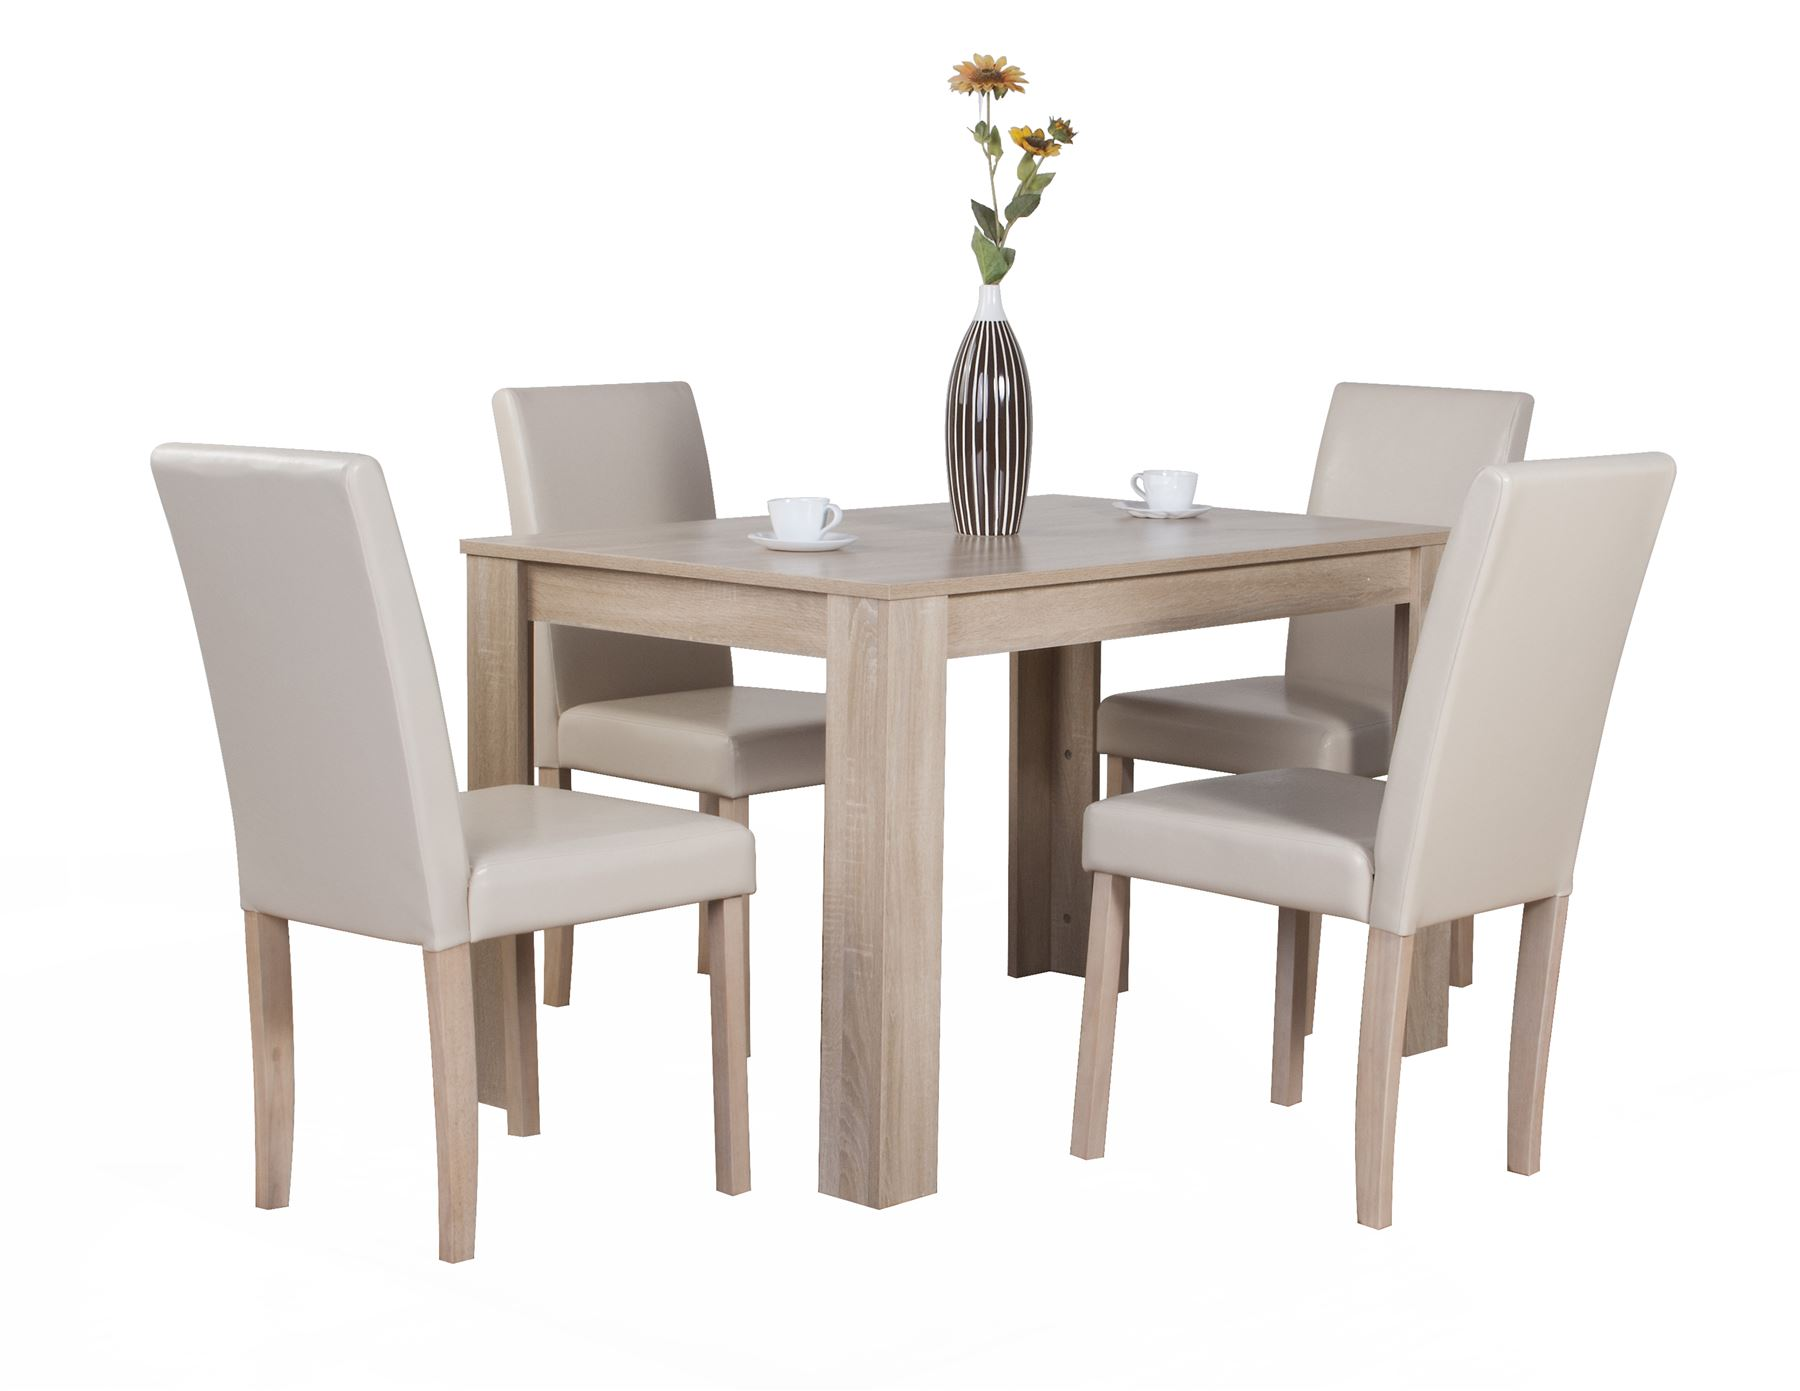 Dover White Oak Effect Wooden Dining Table And